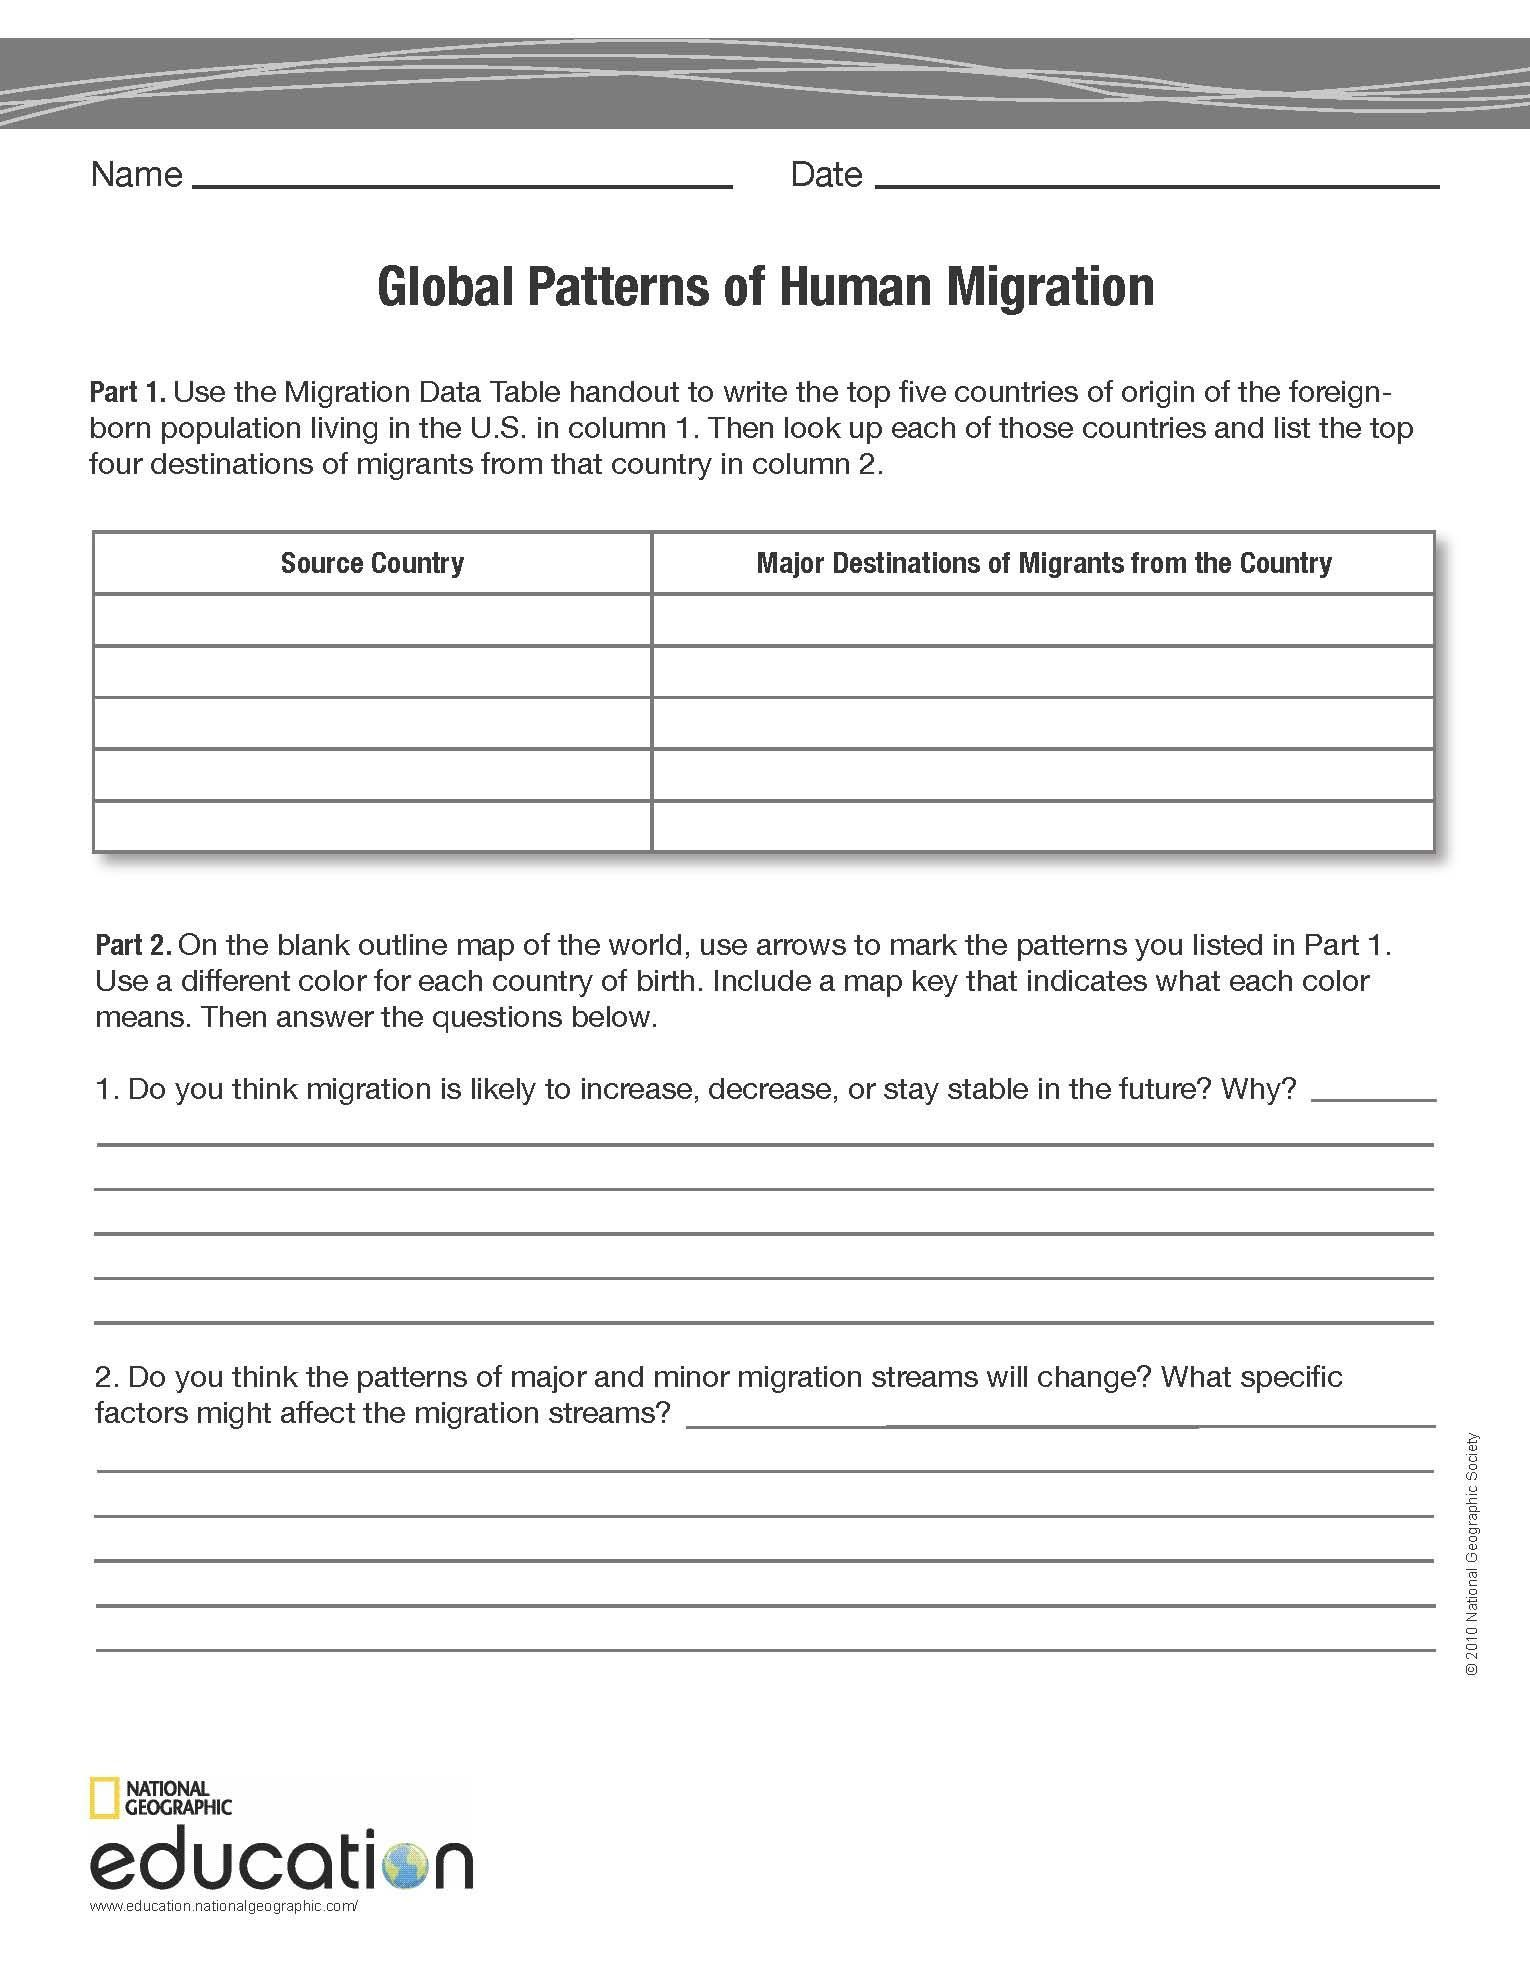 Global Patterns Of Human Migration Human Migration Human